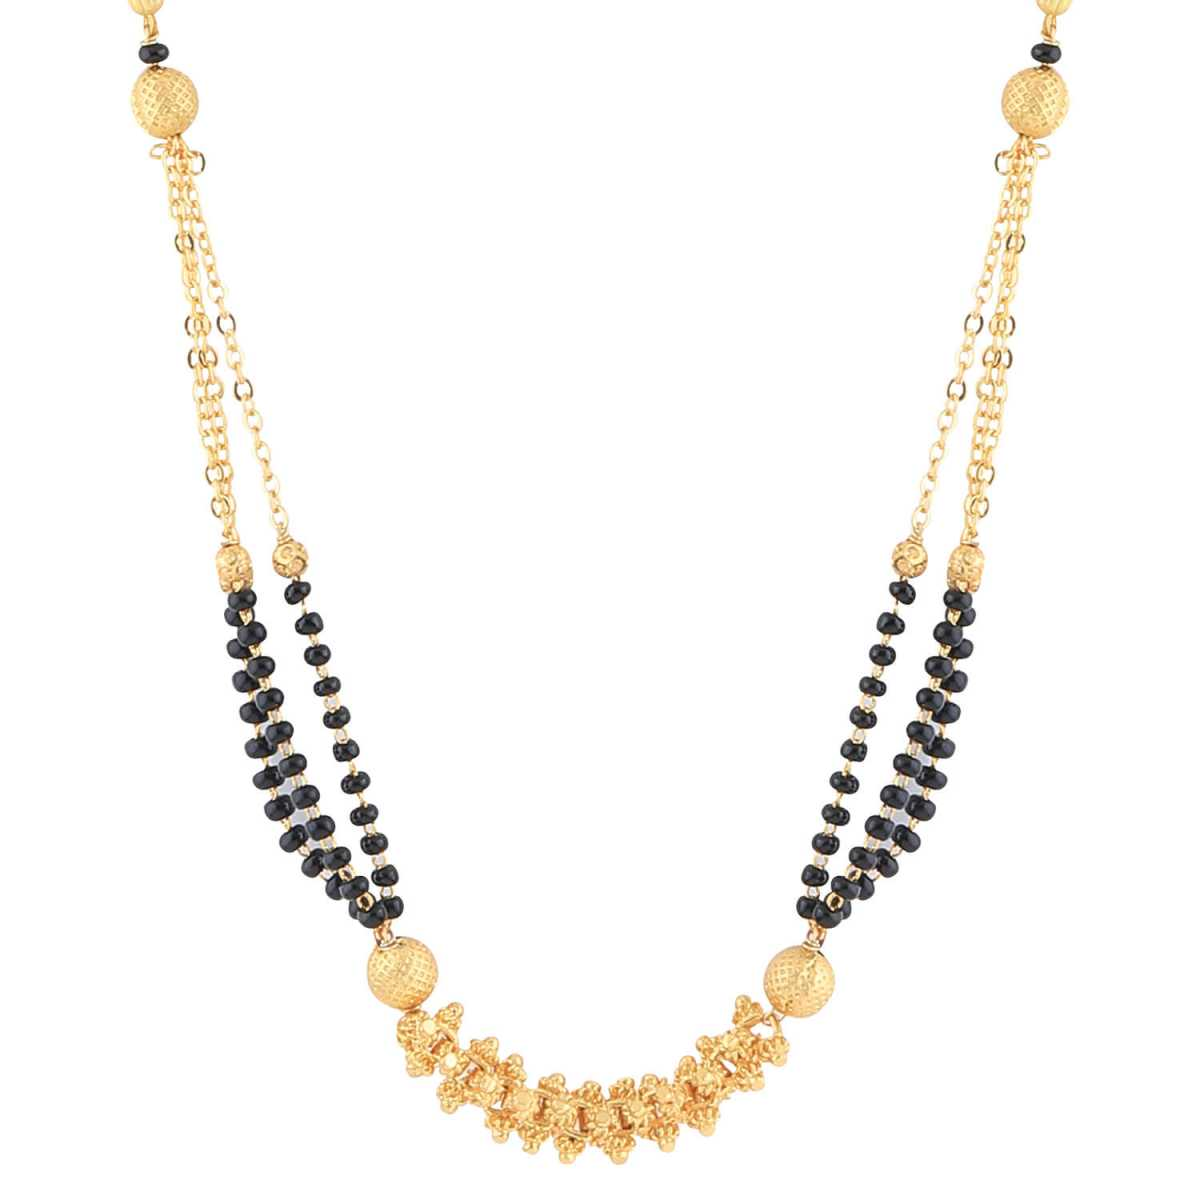 SILVER SHINE Gold Plated Three Chain Designer Mangalsutra For Women